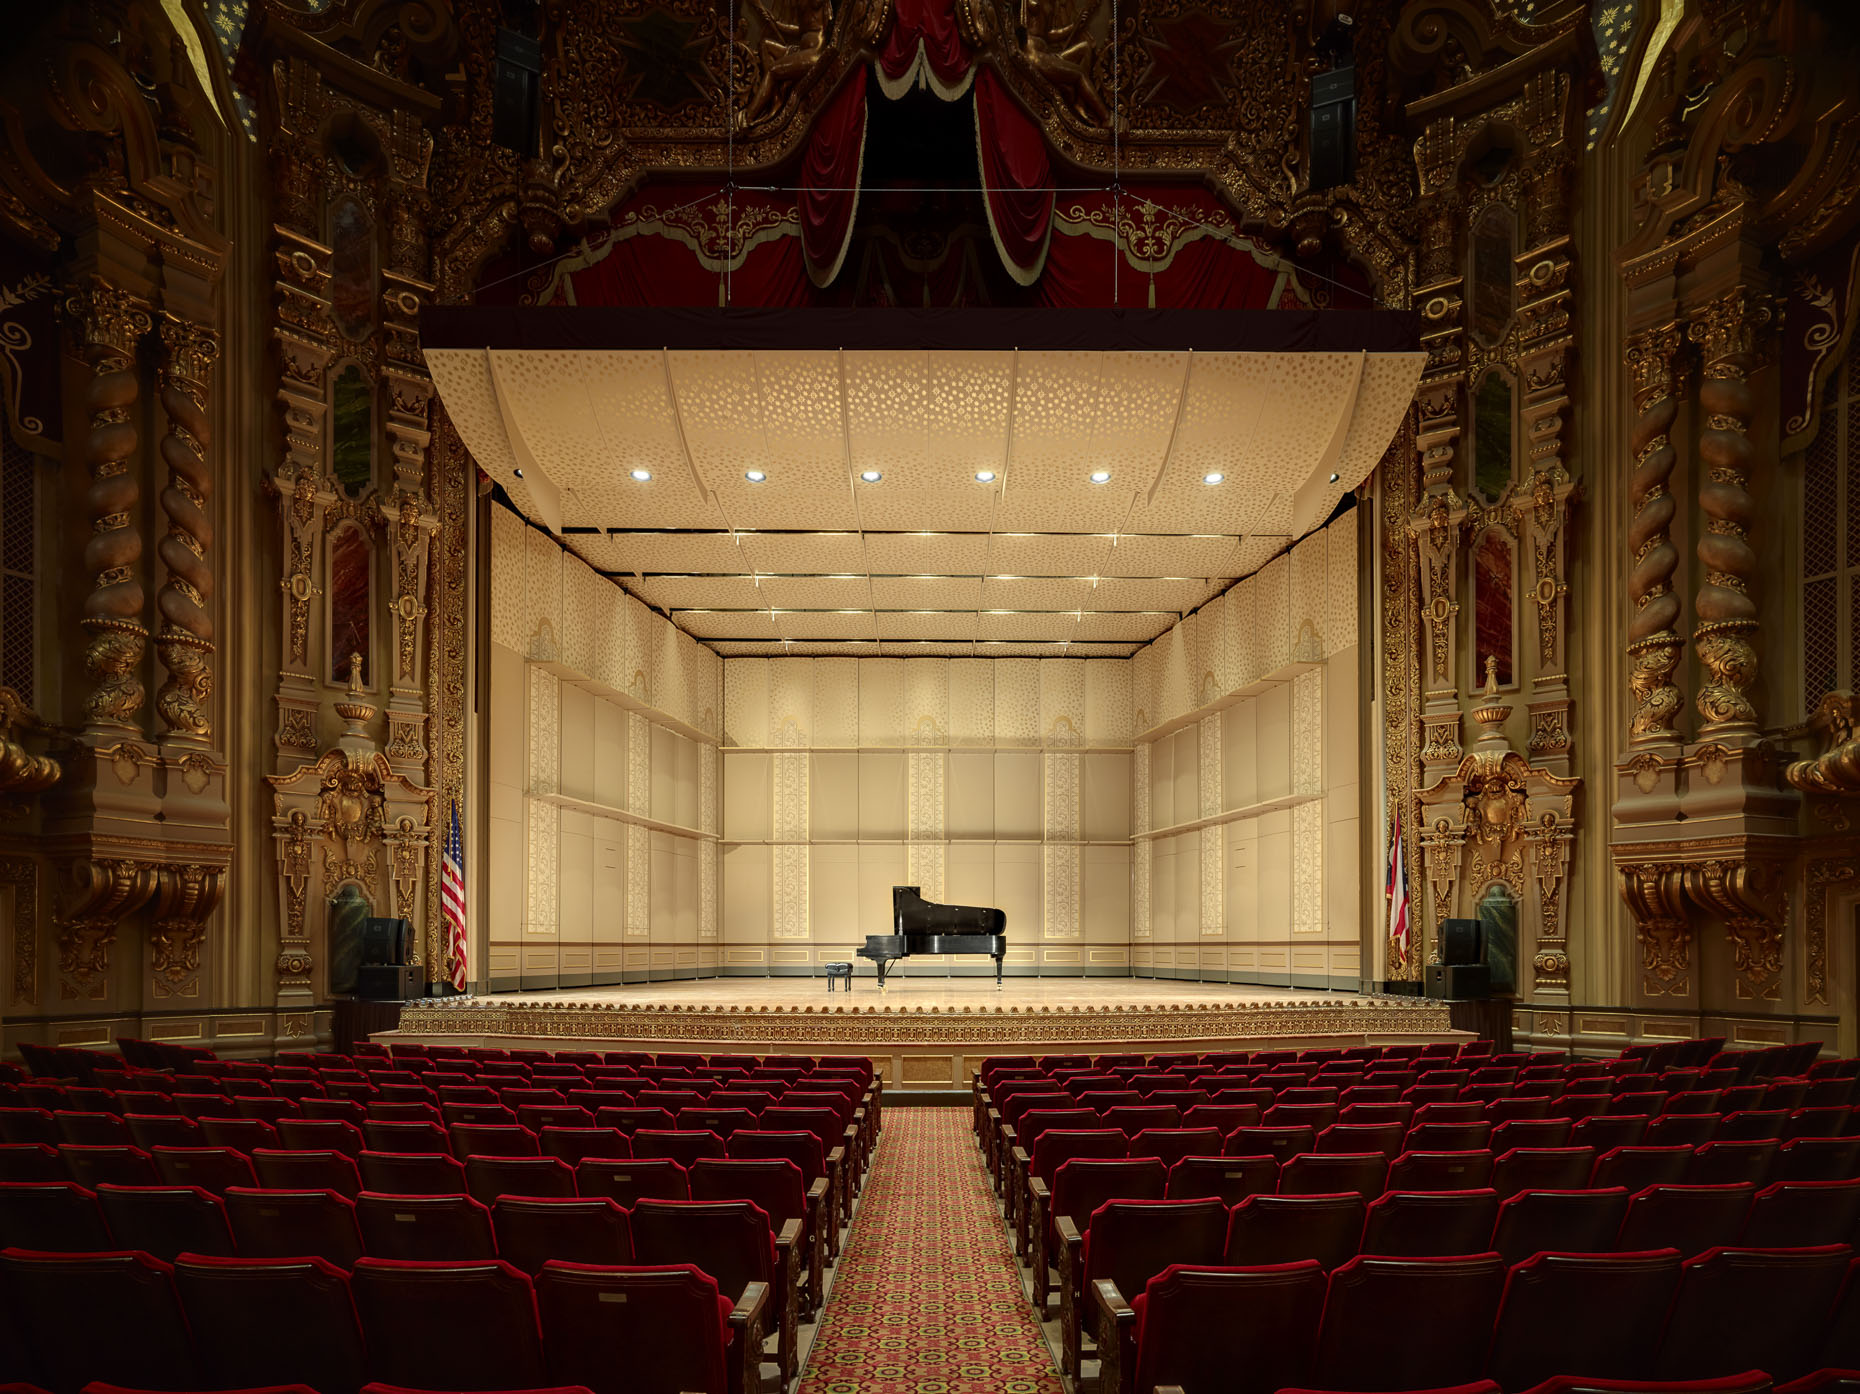 Ohio Theater Orchestral Band Shell by Rogers Krajnak Architects photographed by Brad Feinknopf based in Columbus, Ohio